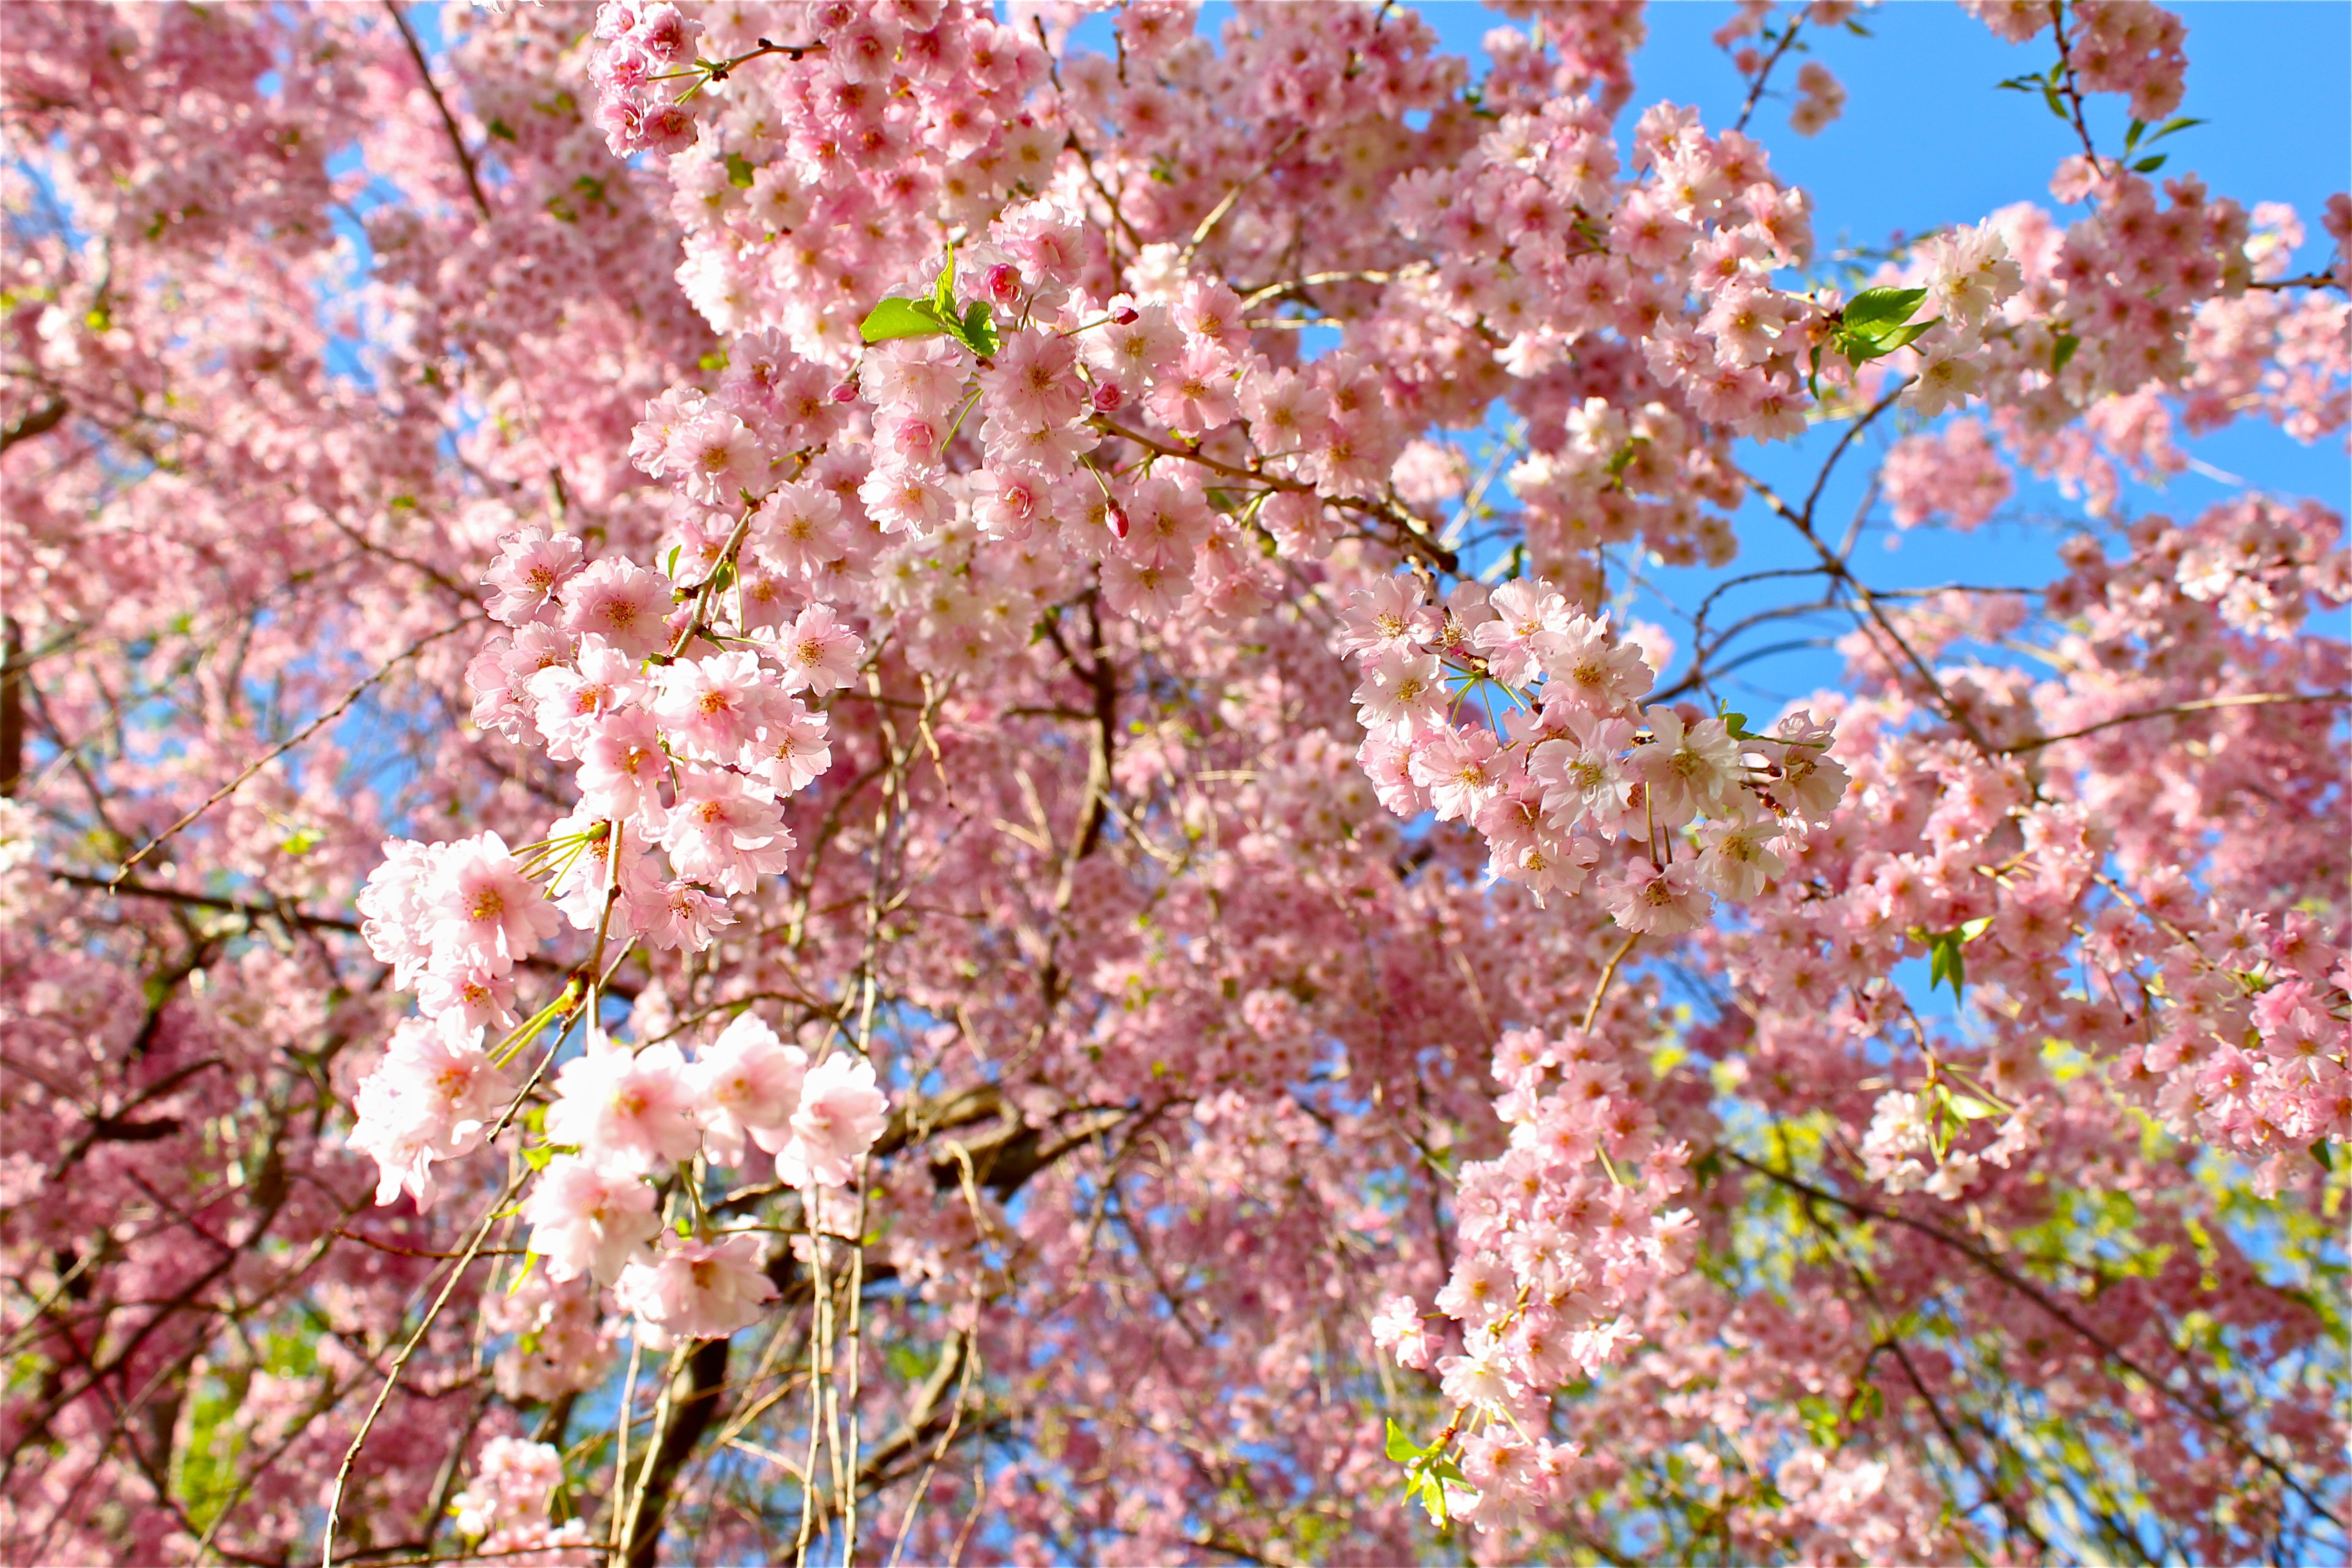 The Cherry Blossom Tree In My Yard Only Blooms For About A Month But It S Beauuuutiful Cherry Blossom Tree Blossom Trees Landscape